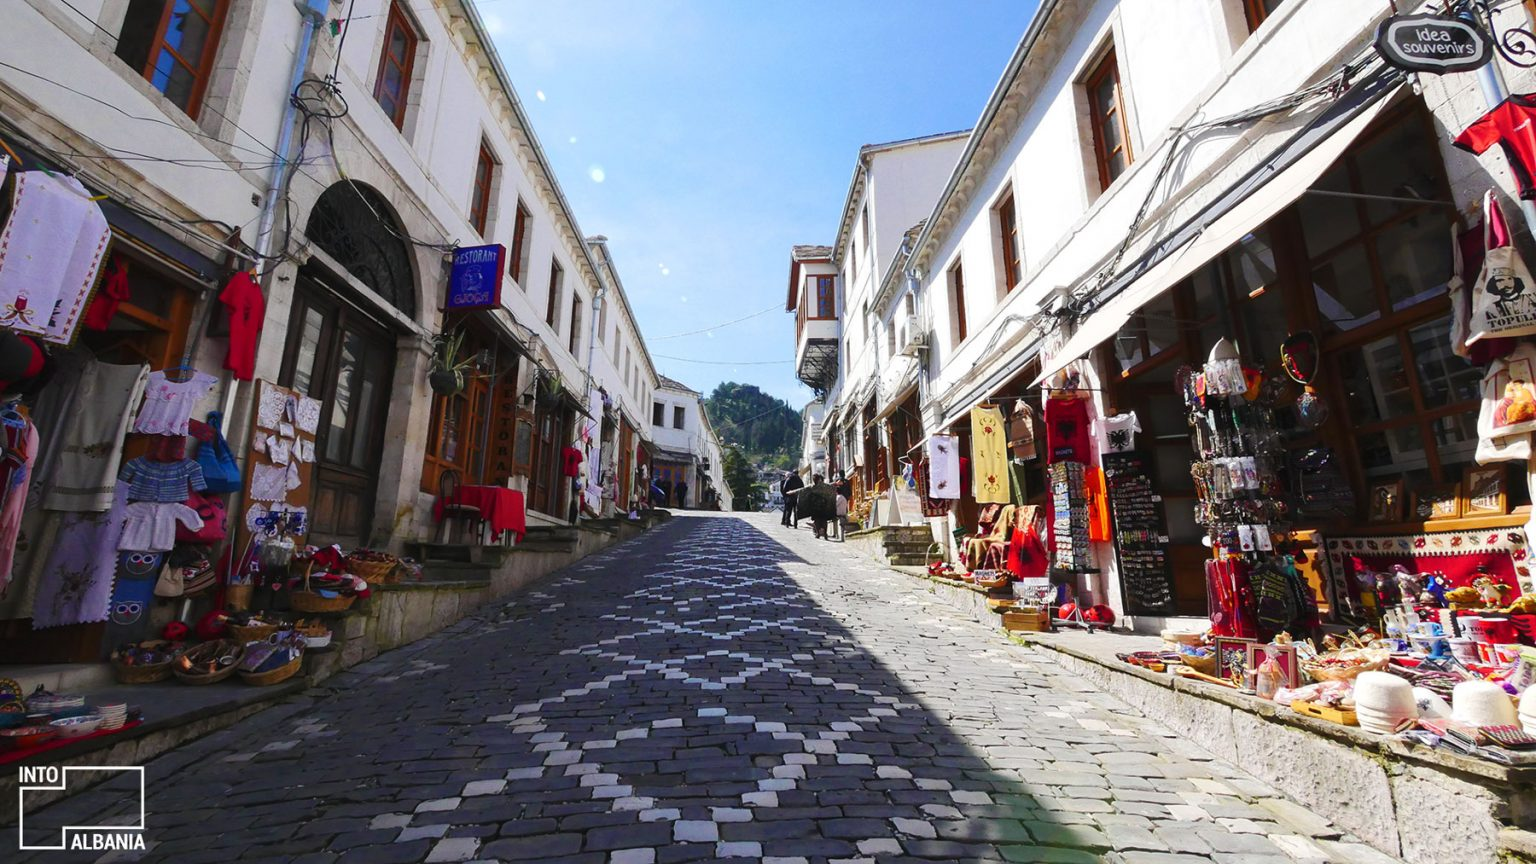 Gjirokastra Bazaar, photo by IntoAlbania.